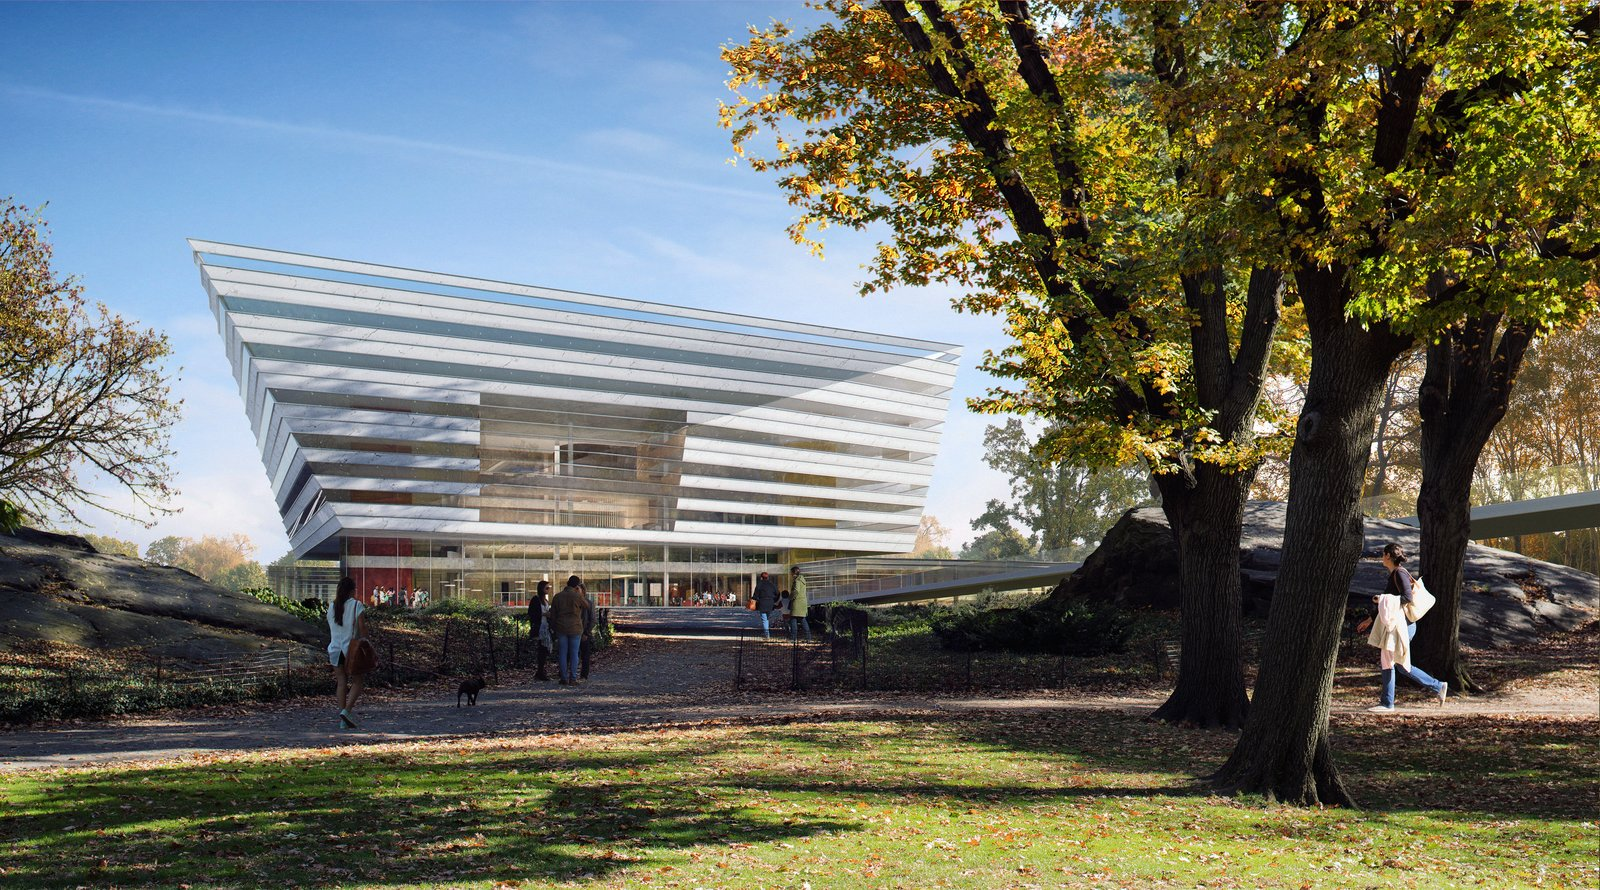 The Shanghai Library visually reads like the  Photo 2 of 8 in Schmidt Hammer Lassen Architects' Winning Design For the Shanghai Library